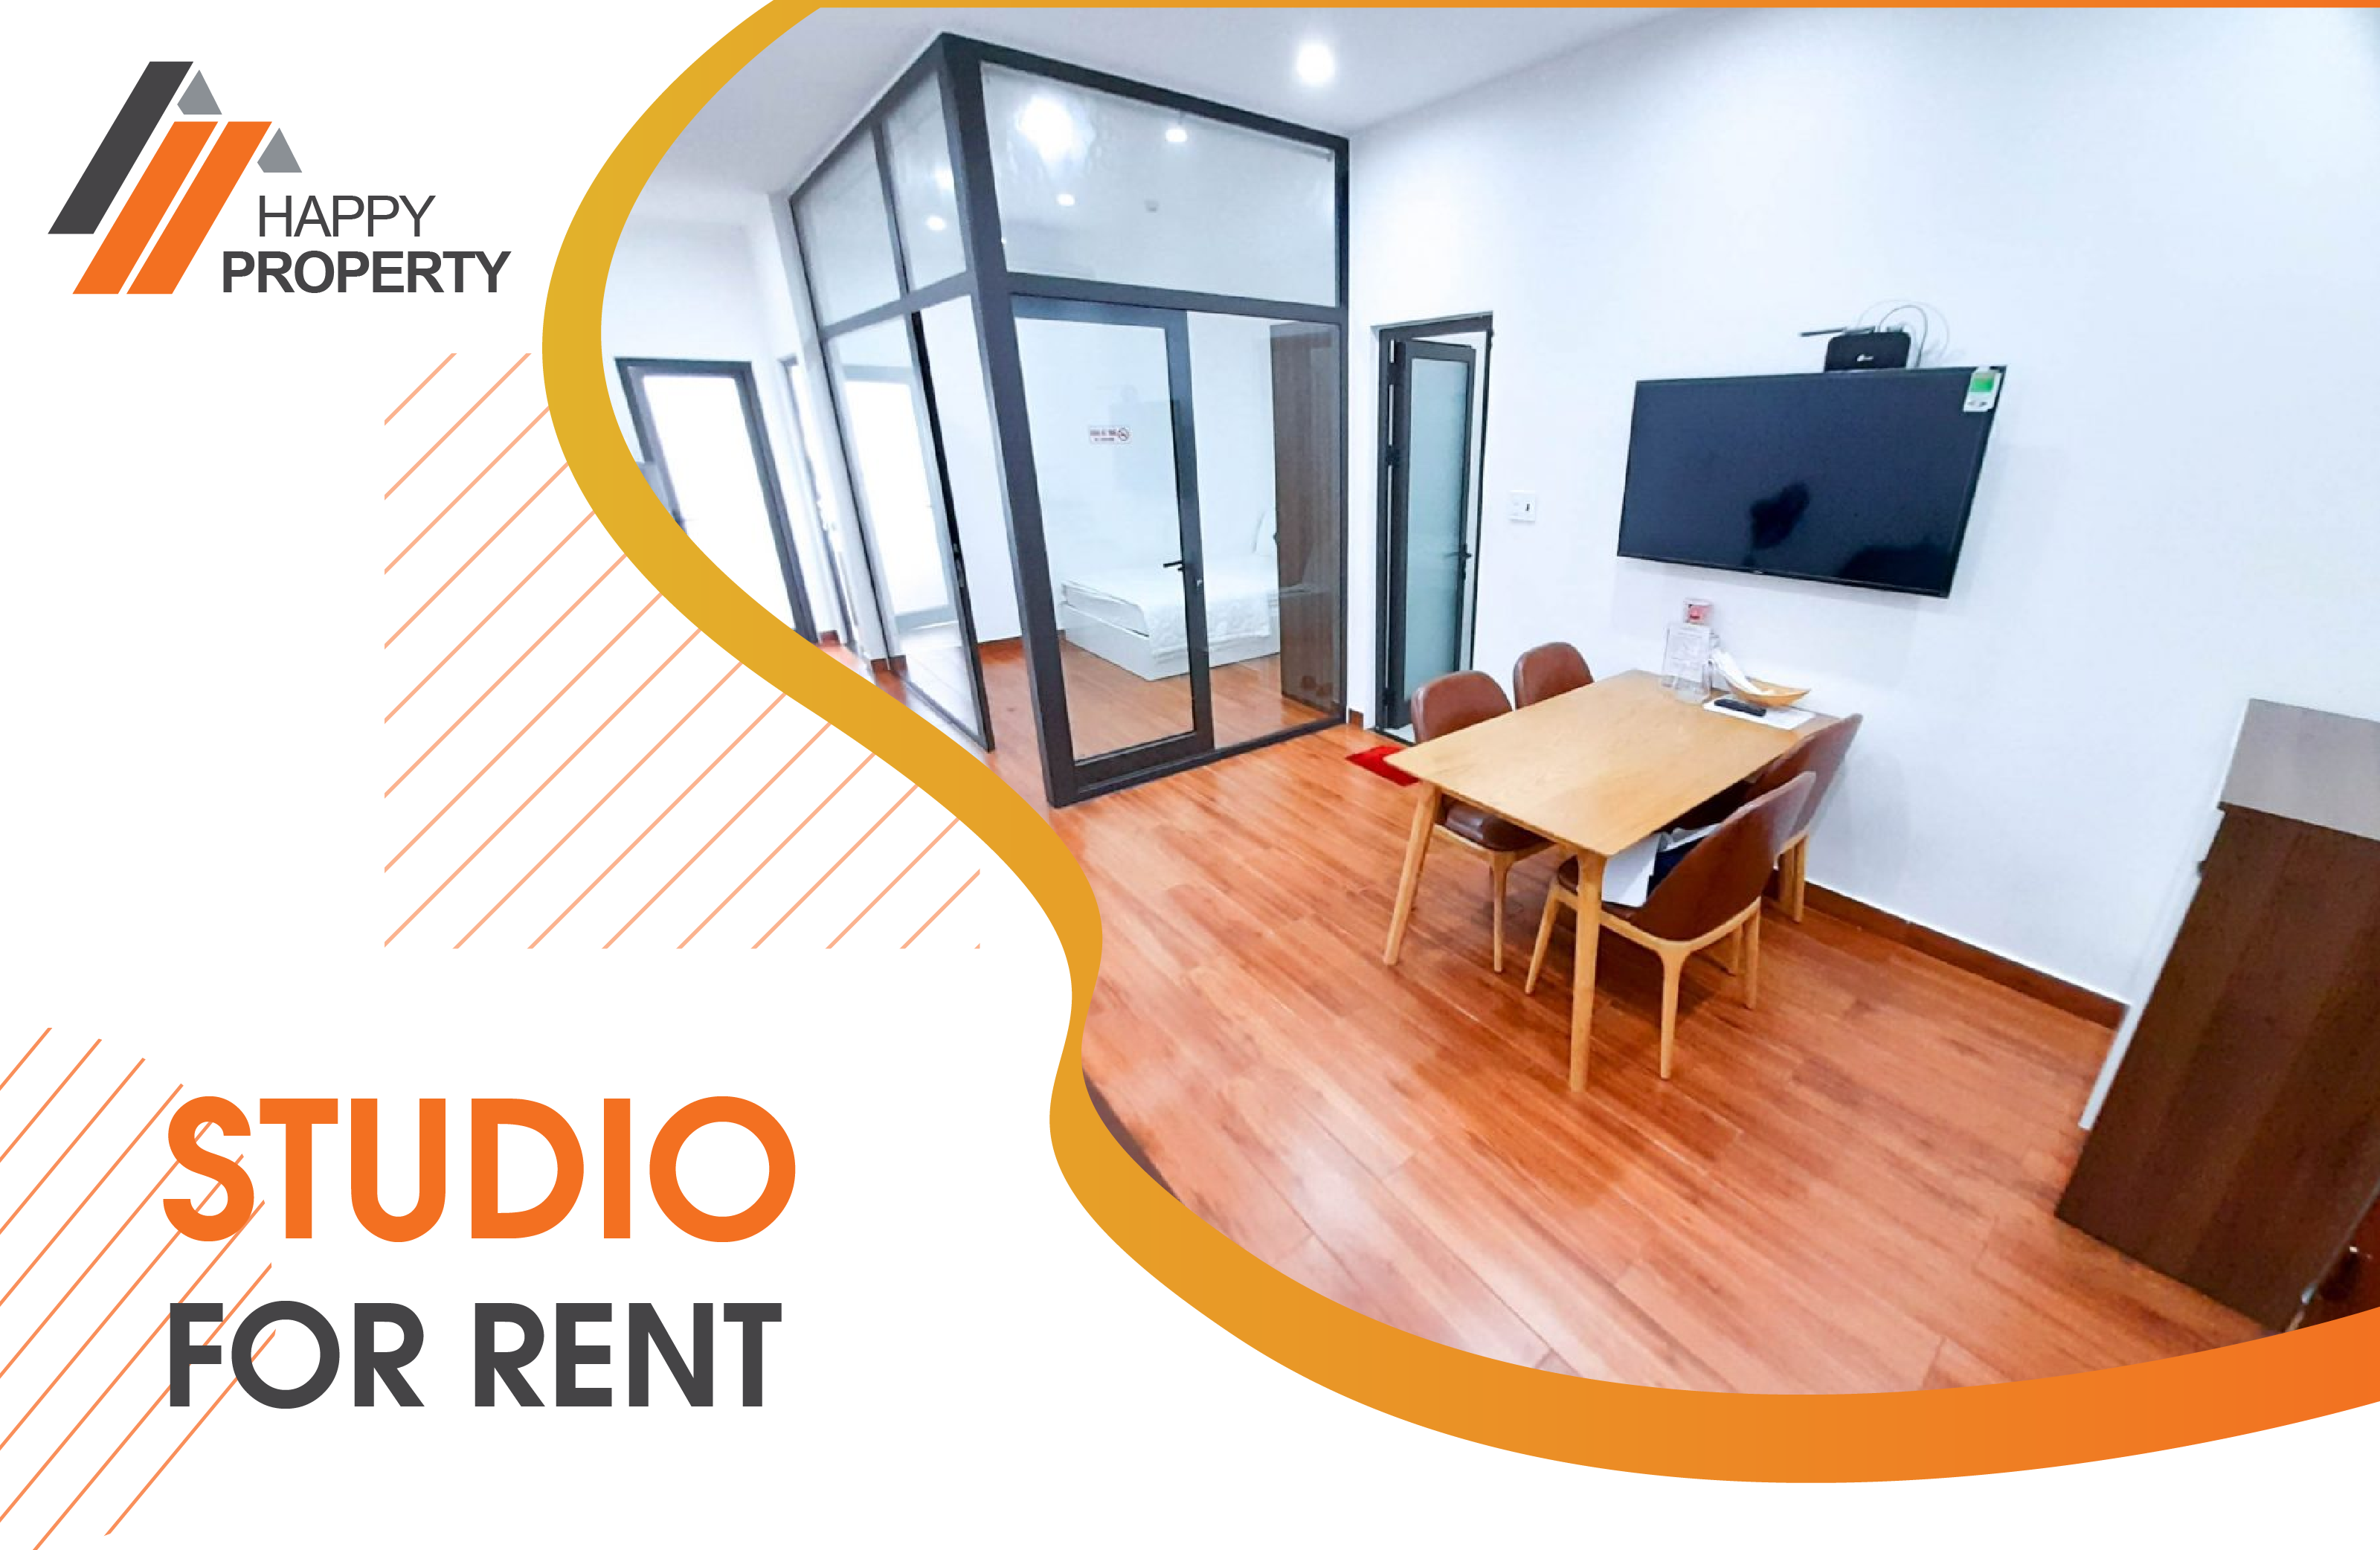 2 Bedroom San Apartment For Rent – ST08